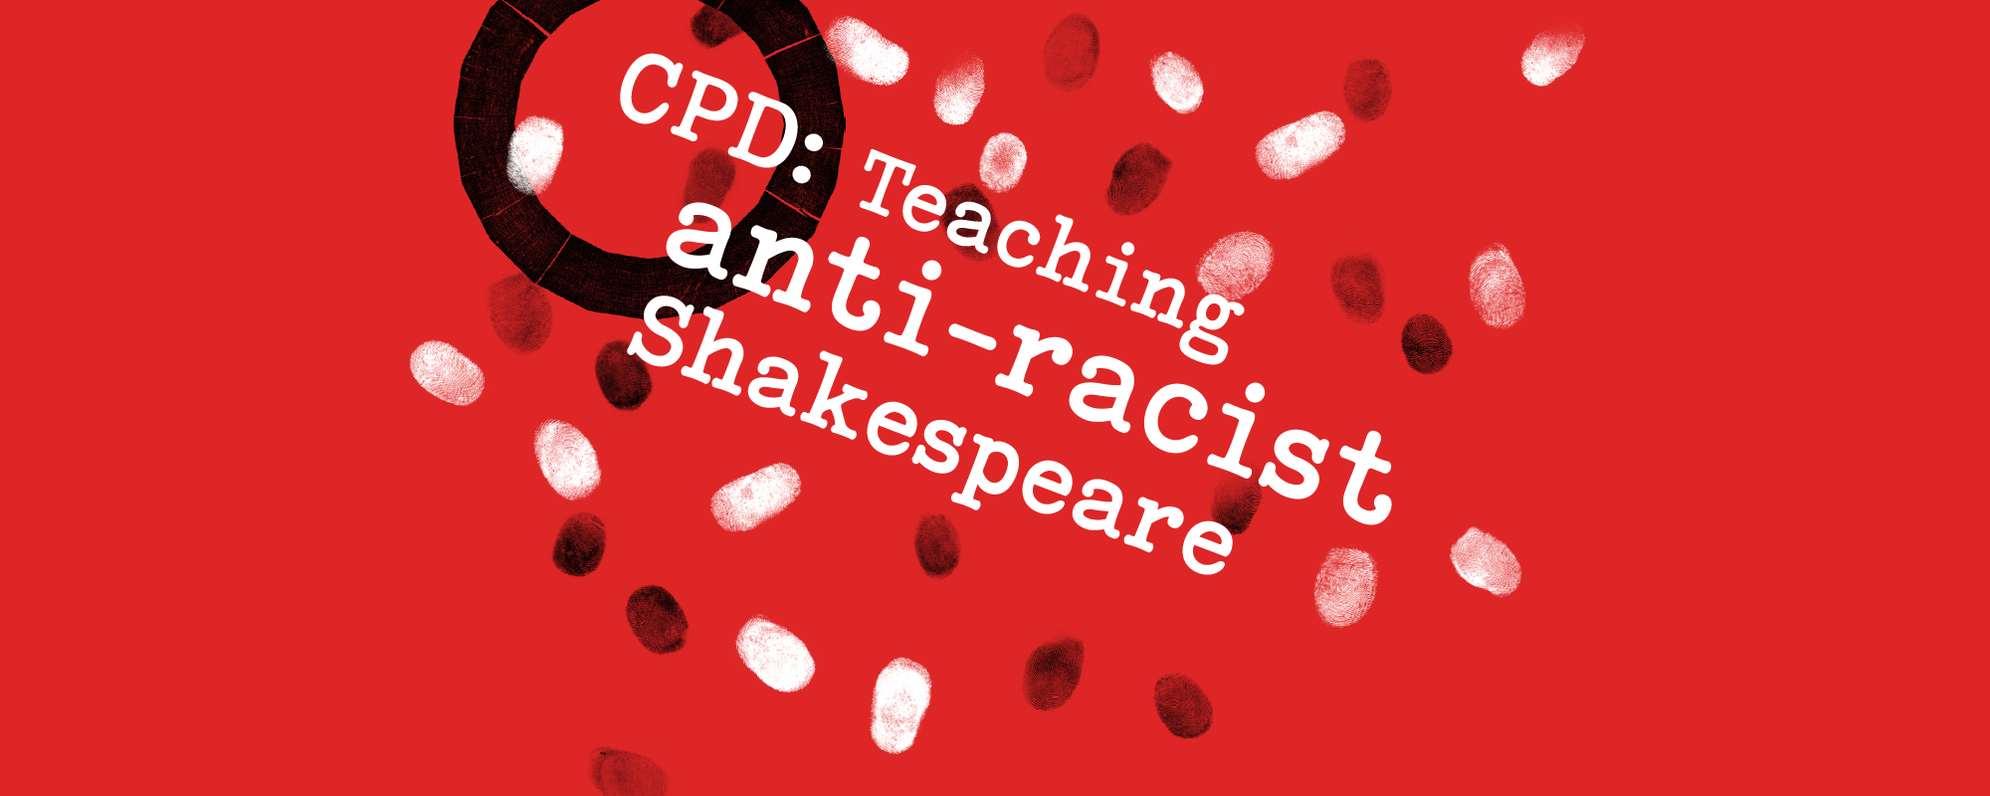 A graphic reading 'CPD teaching anti-racist Shakespeare'